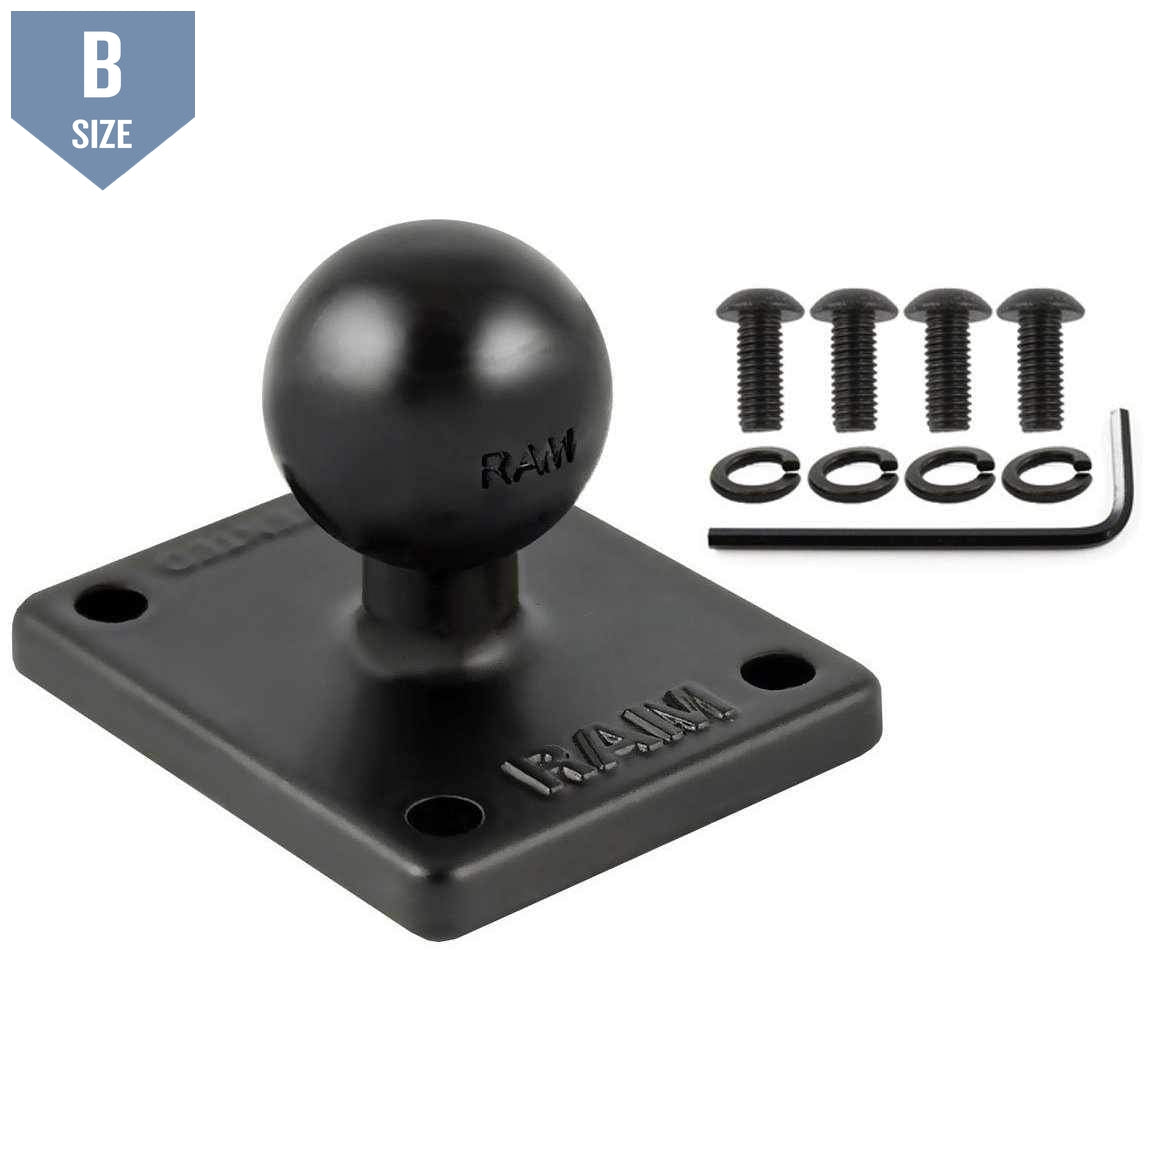 RAM Square Base for TomTom Rider 2 B Size (RAM-B-347U-TOM1) - Modest Mounts